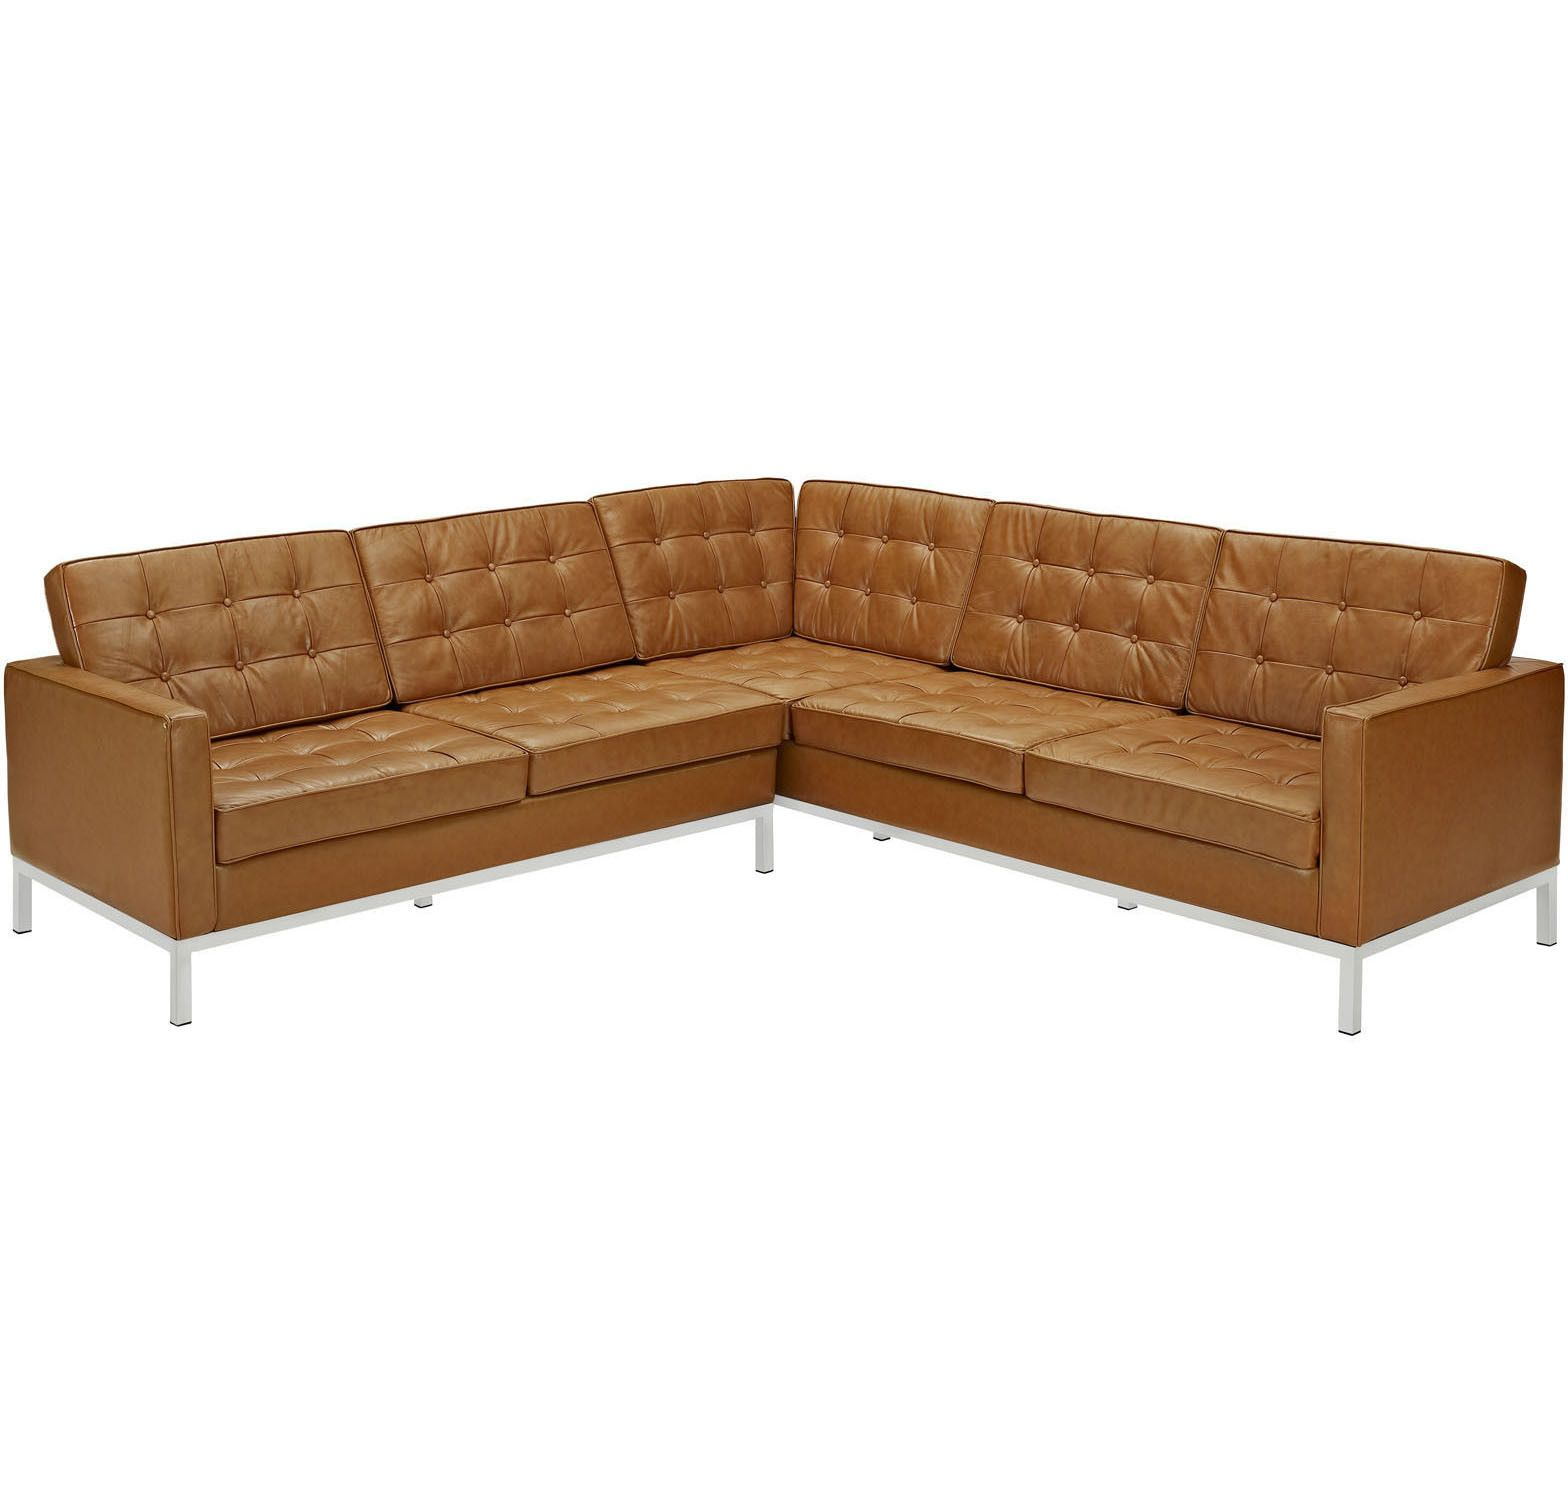 shaped couch on brown wooden white floor chaise tufted with charming l cushion recliner sofa leather and sectional three button